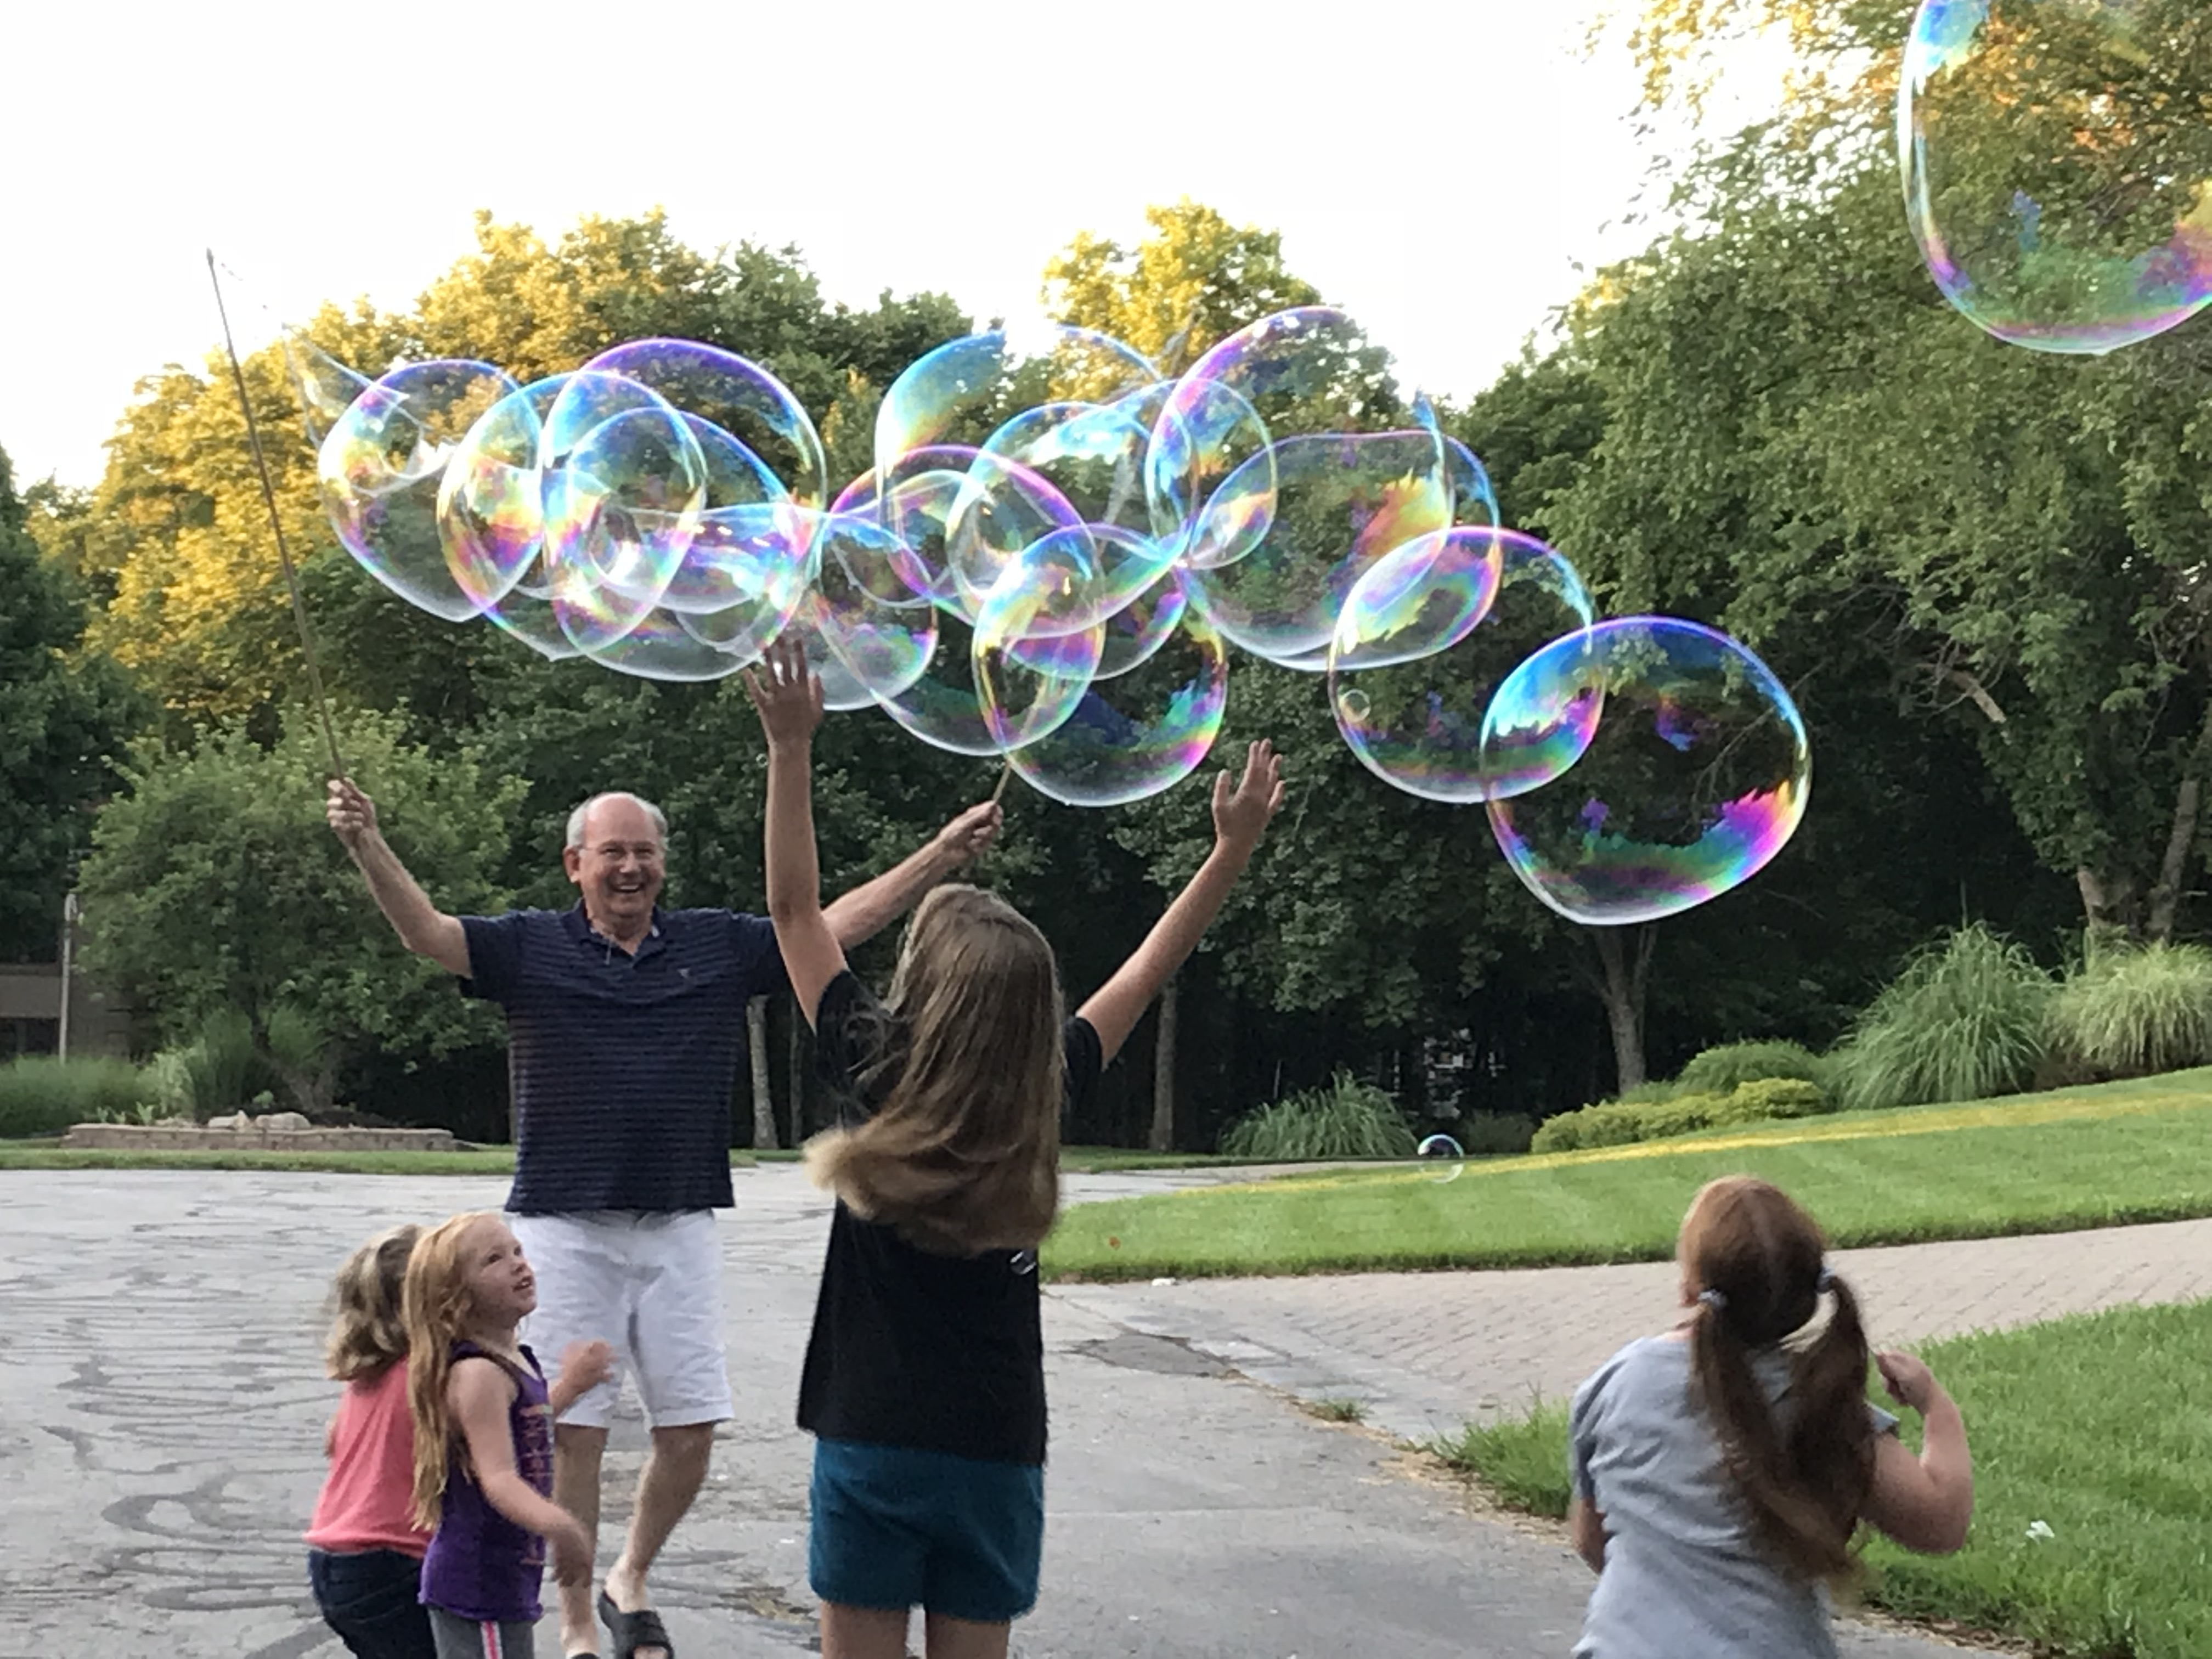 Garland Bubbles